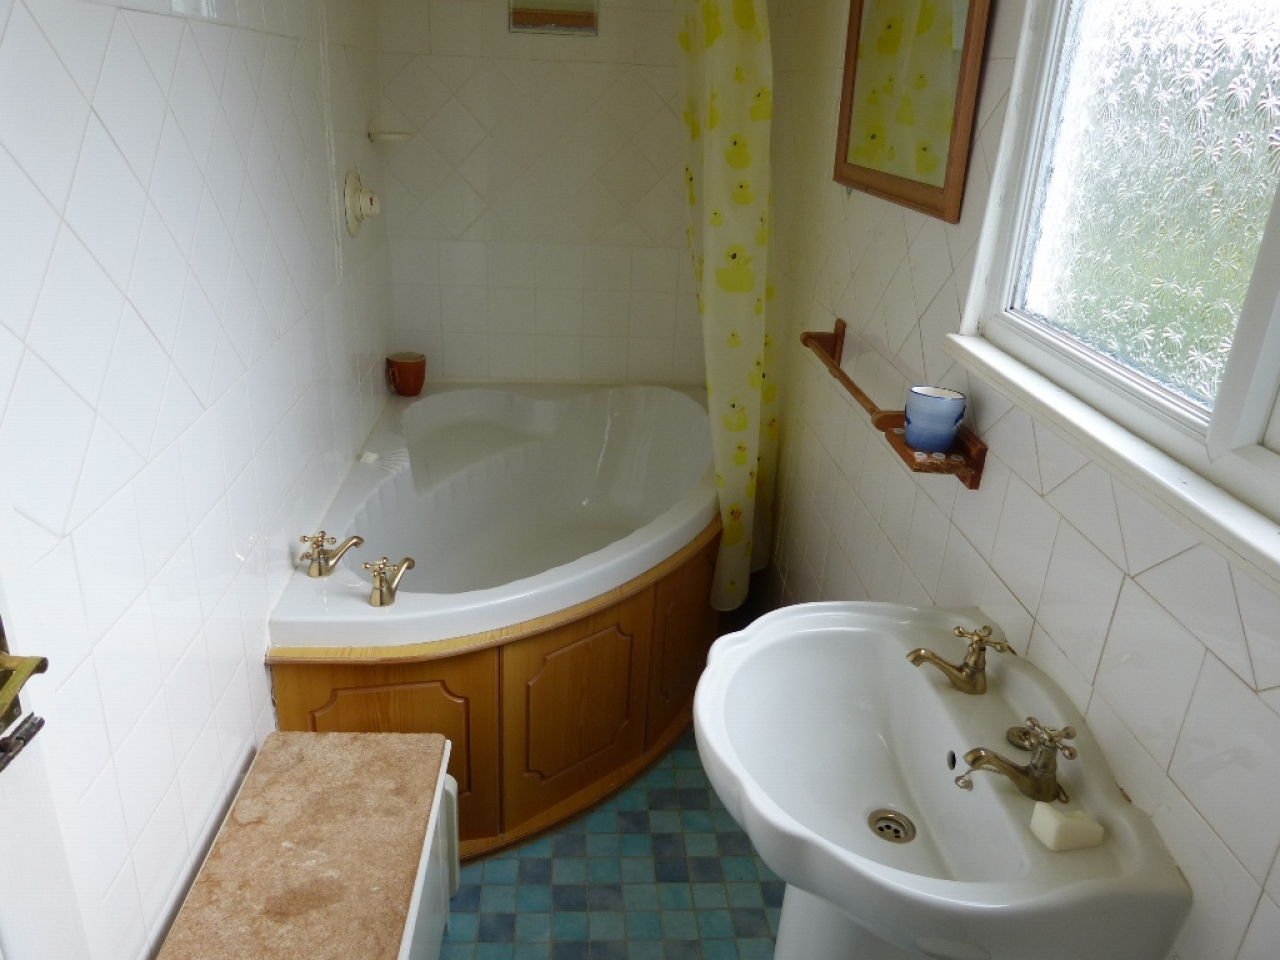 4 bedroom detached bungalow SSTC in Abergele - Photograph 7